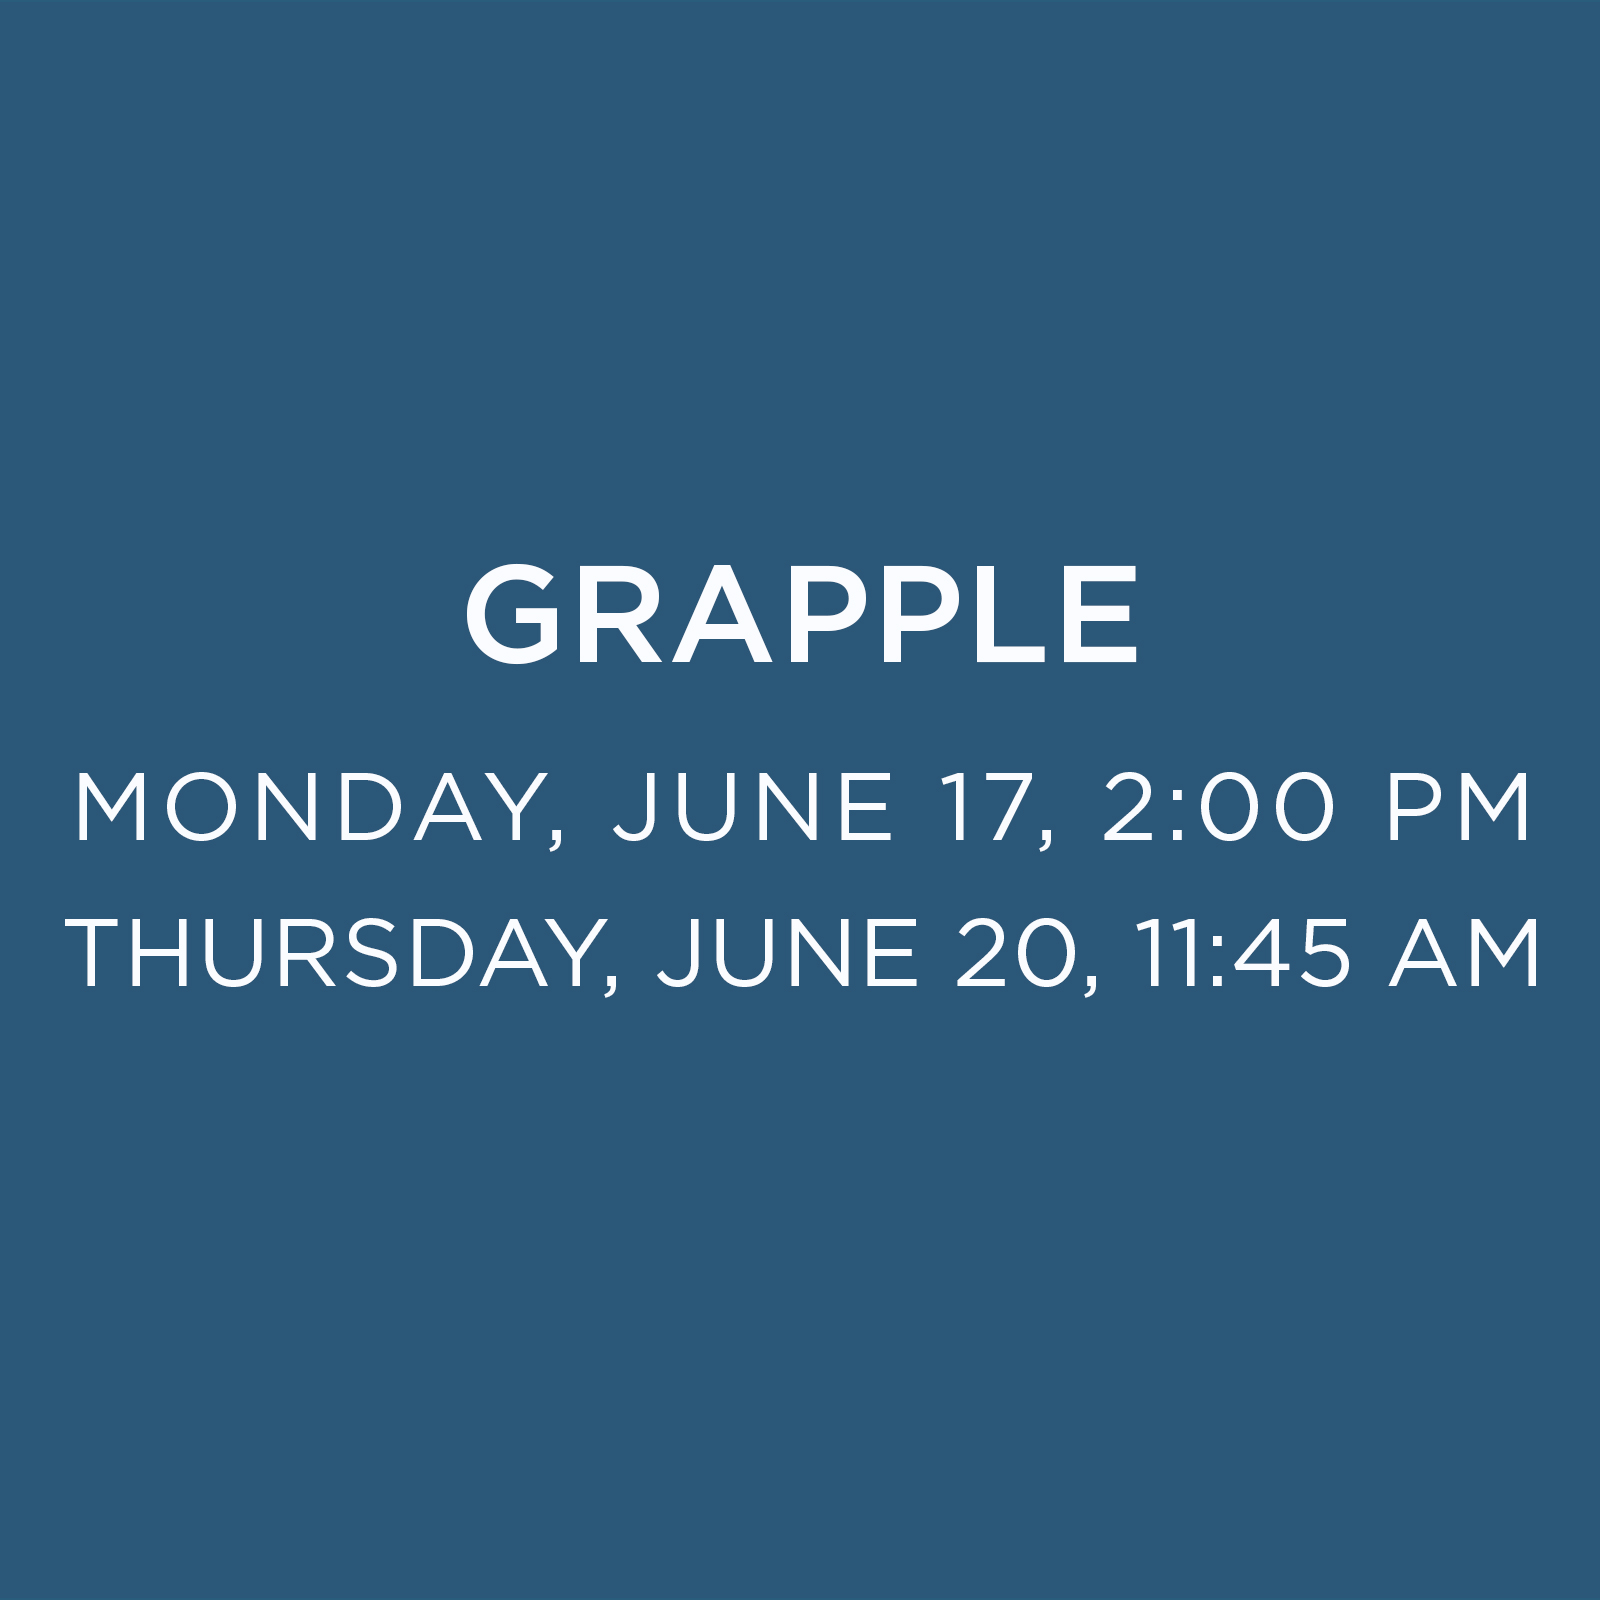 GRAPPLE DEPARTURE Times.jpg